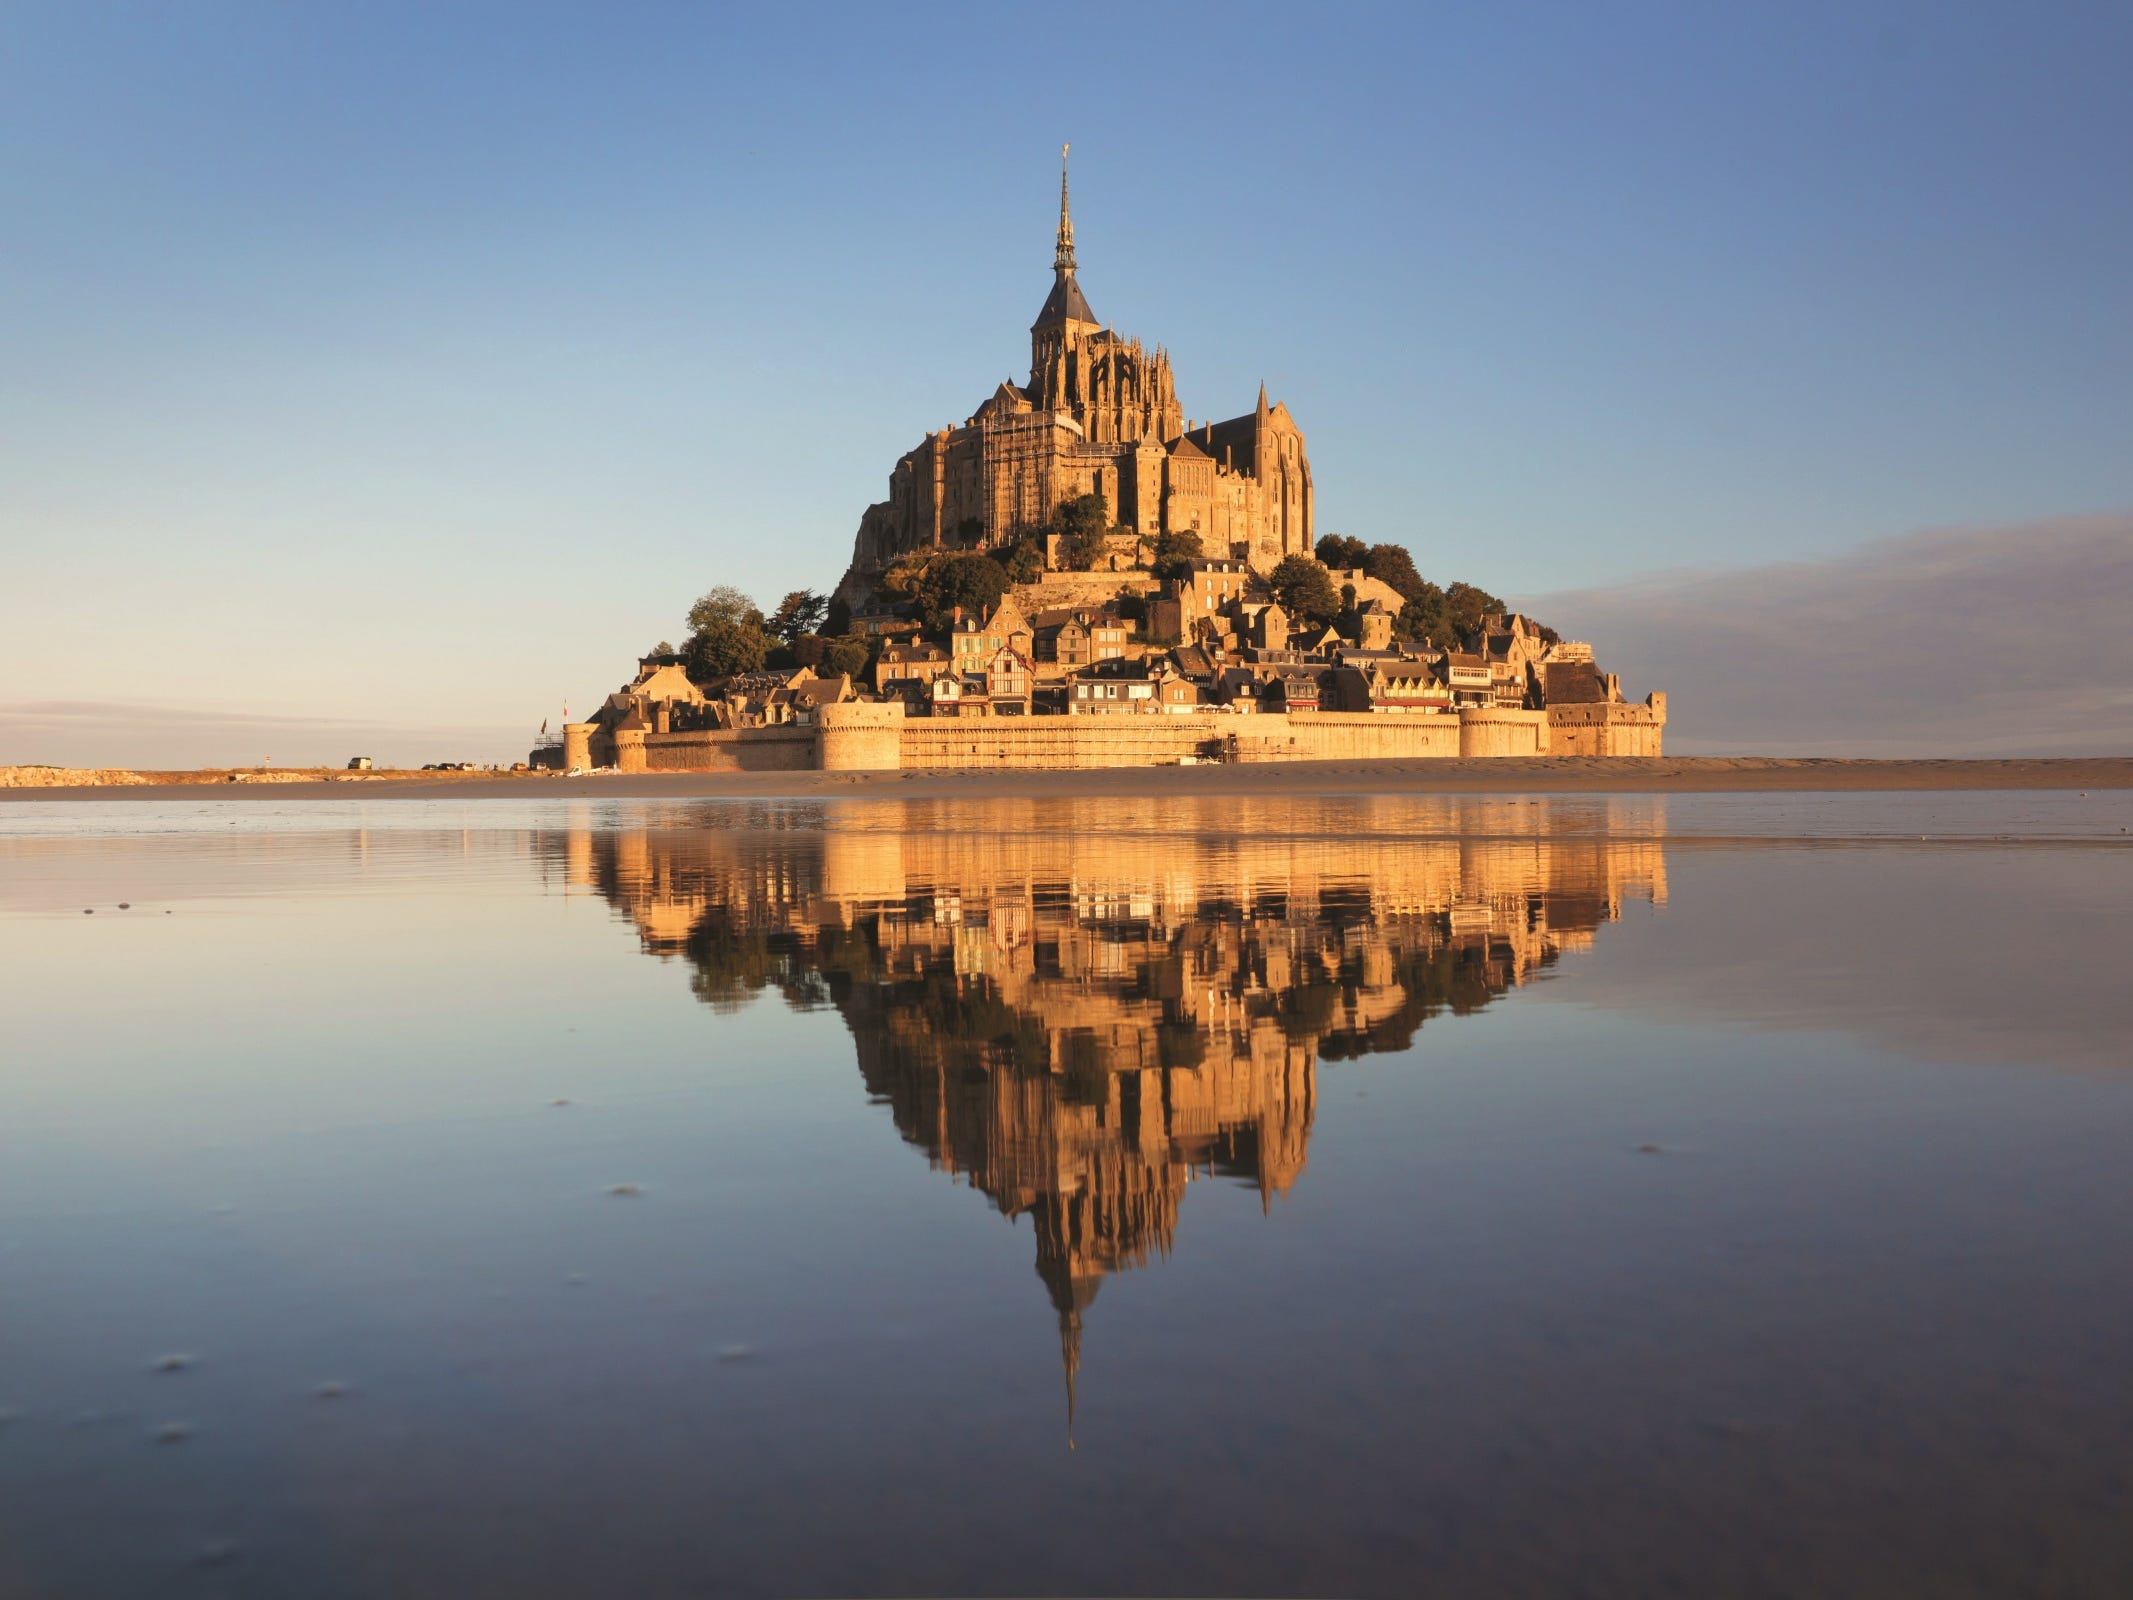 No. 9 on the top 10 list of regions to visit in 2019 is Normandy, France. Seventy-five years since 1944, when allied boots landed on its beaches and the scars of war reshaped and remade Normandy.